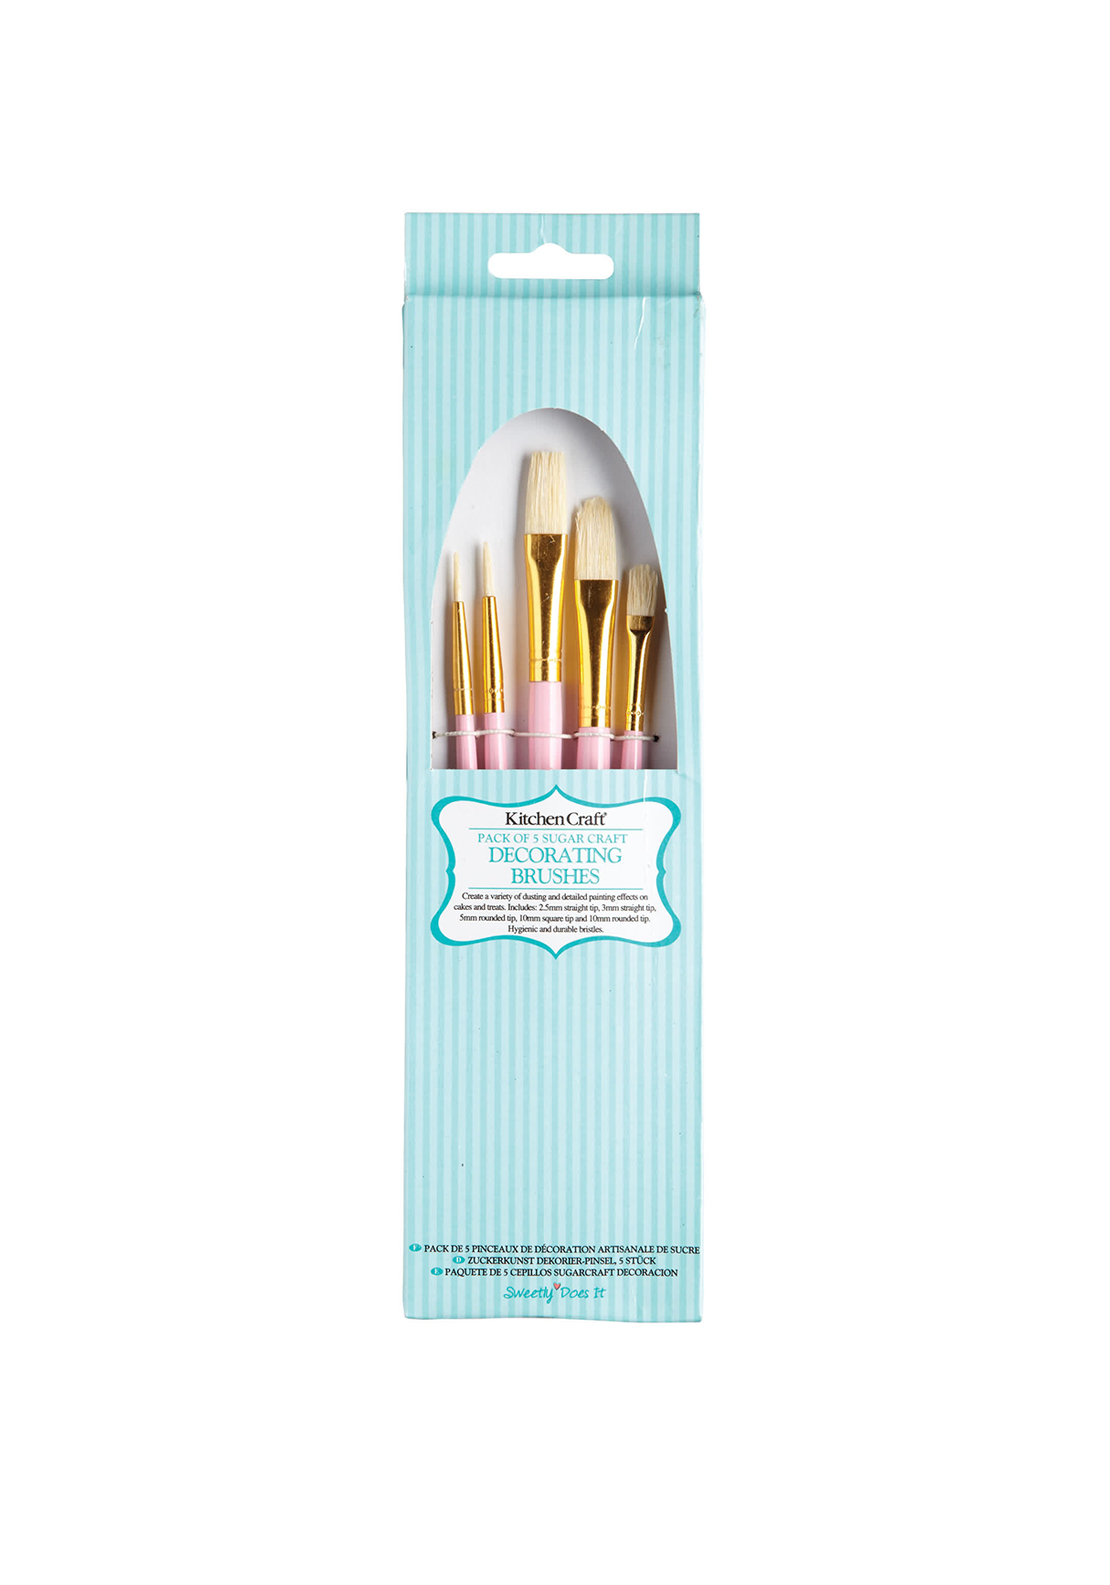 Kitchen Craft Pack of 5 Sugar Craft Decorating Brushes